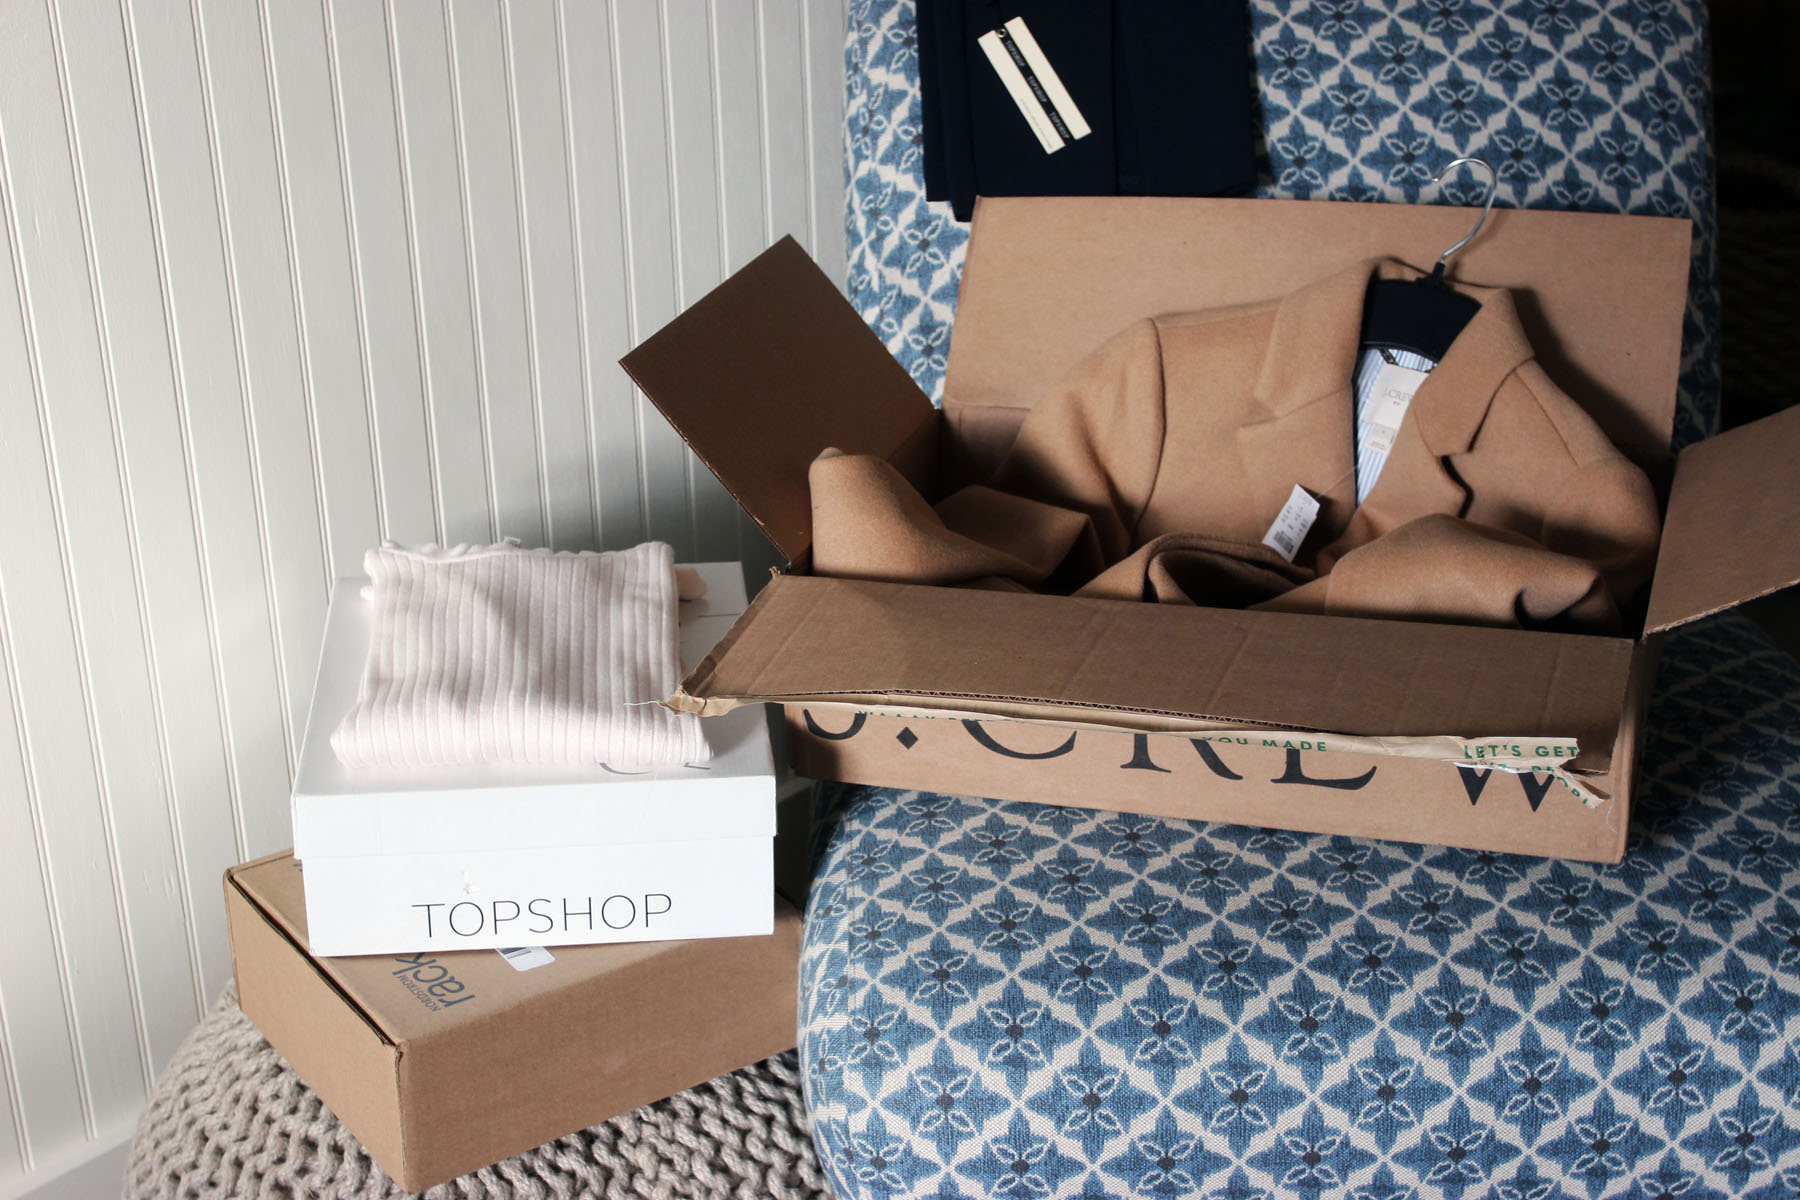 Unboxing favorite pieces of clothing after a stress-free online shopping experience.